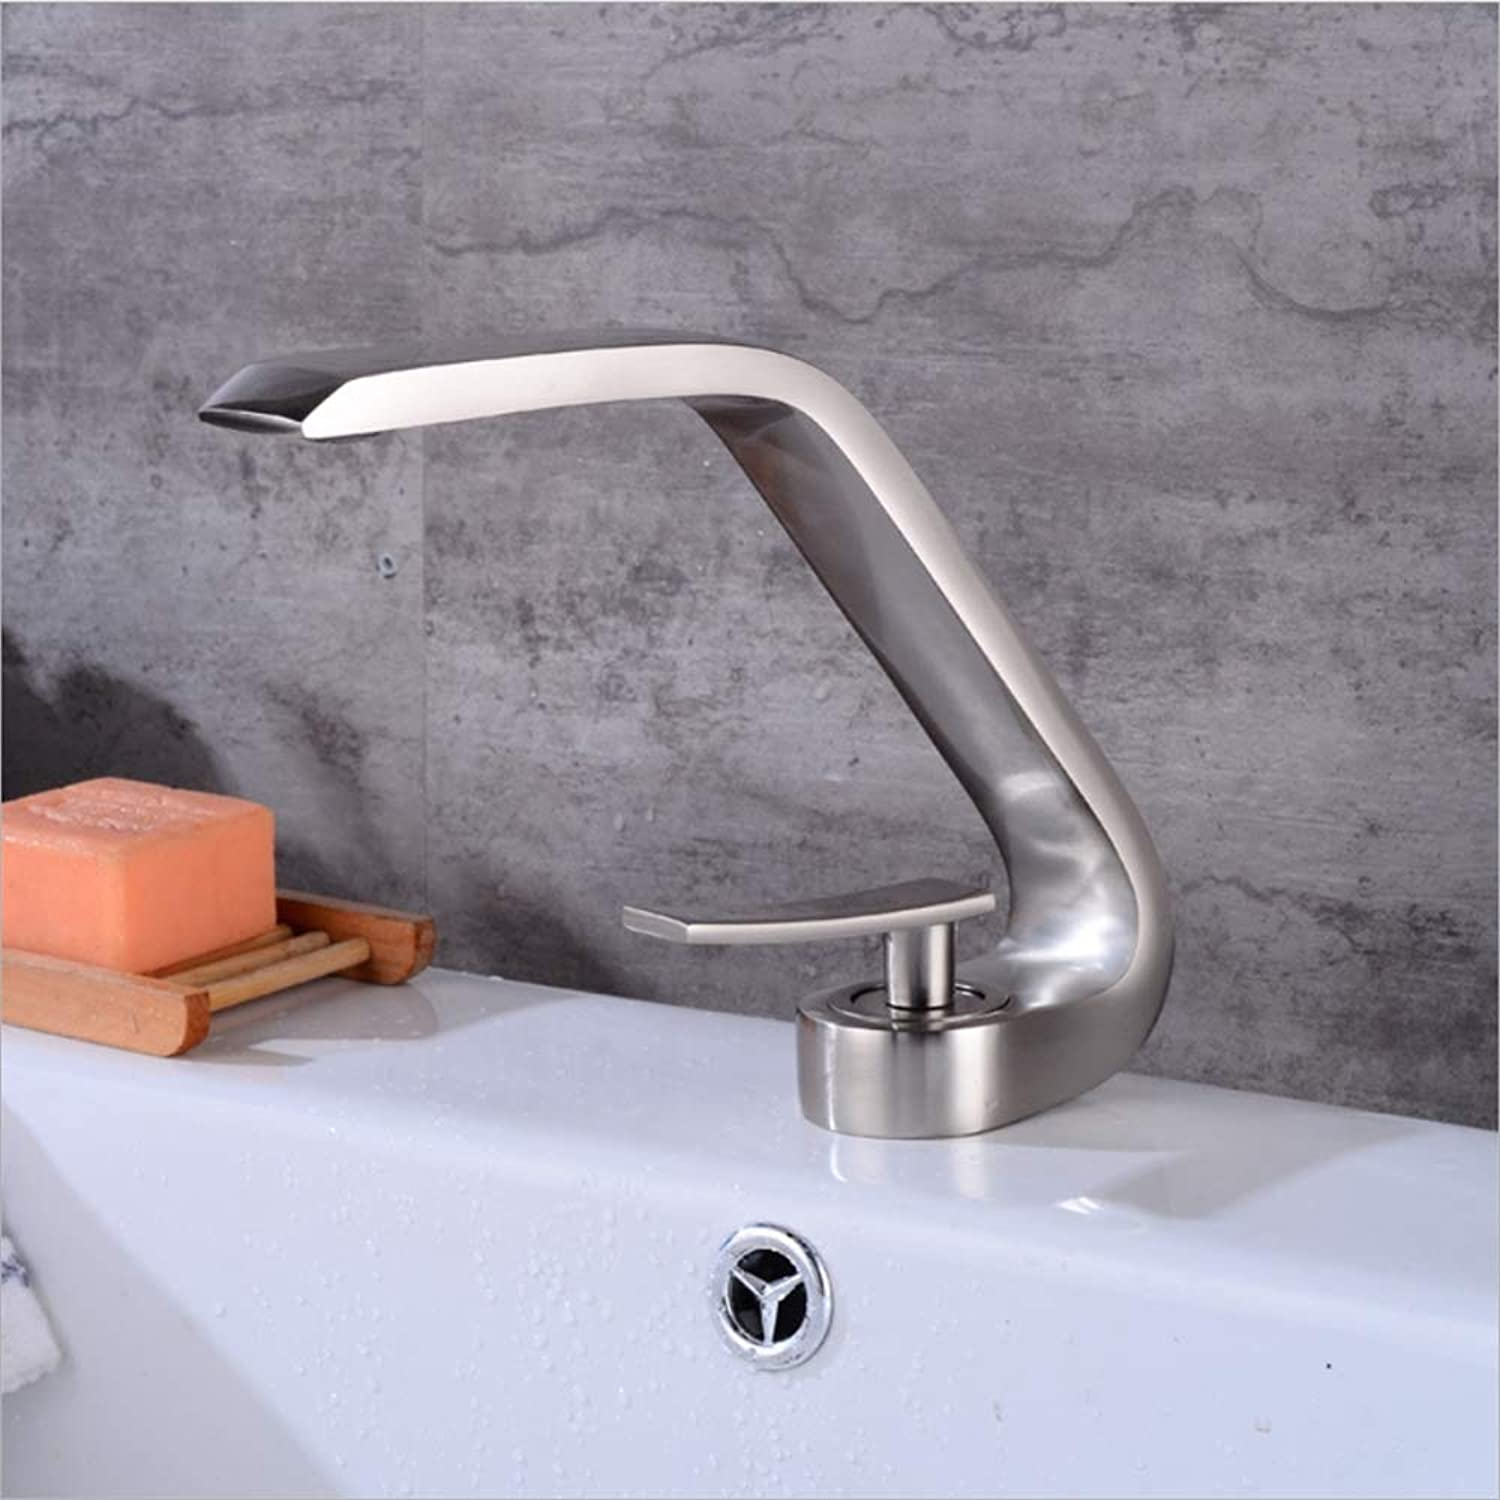 Bathroom Taps Basin Mixer Faucet, Curved Horn Shape, Brass Brushed Hot And Cold Basin Hole Mono Lavatory Tub